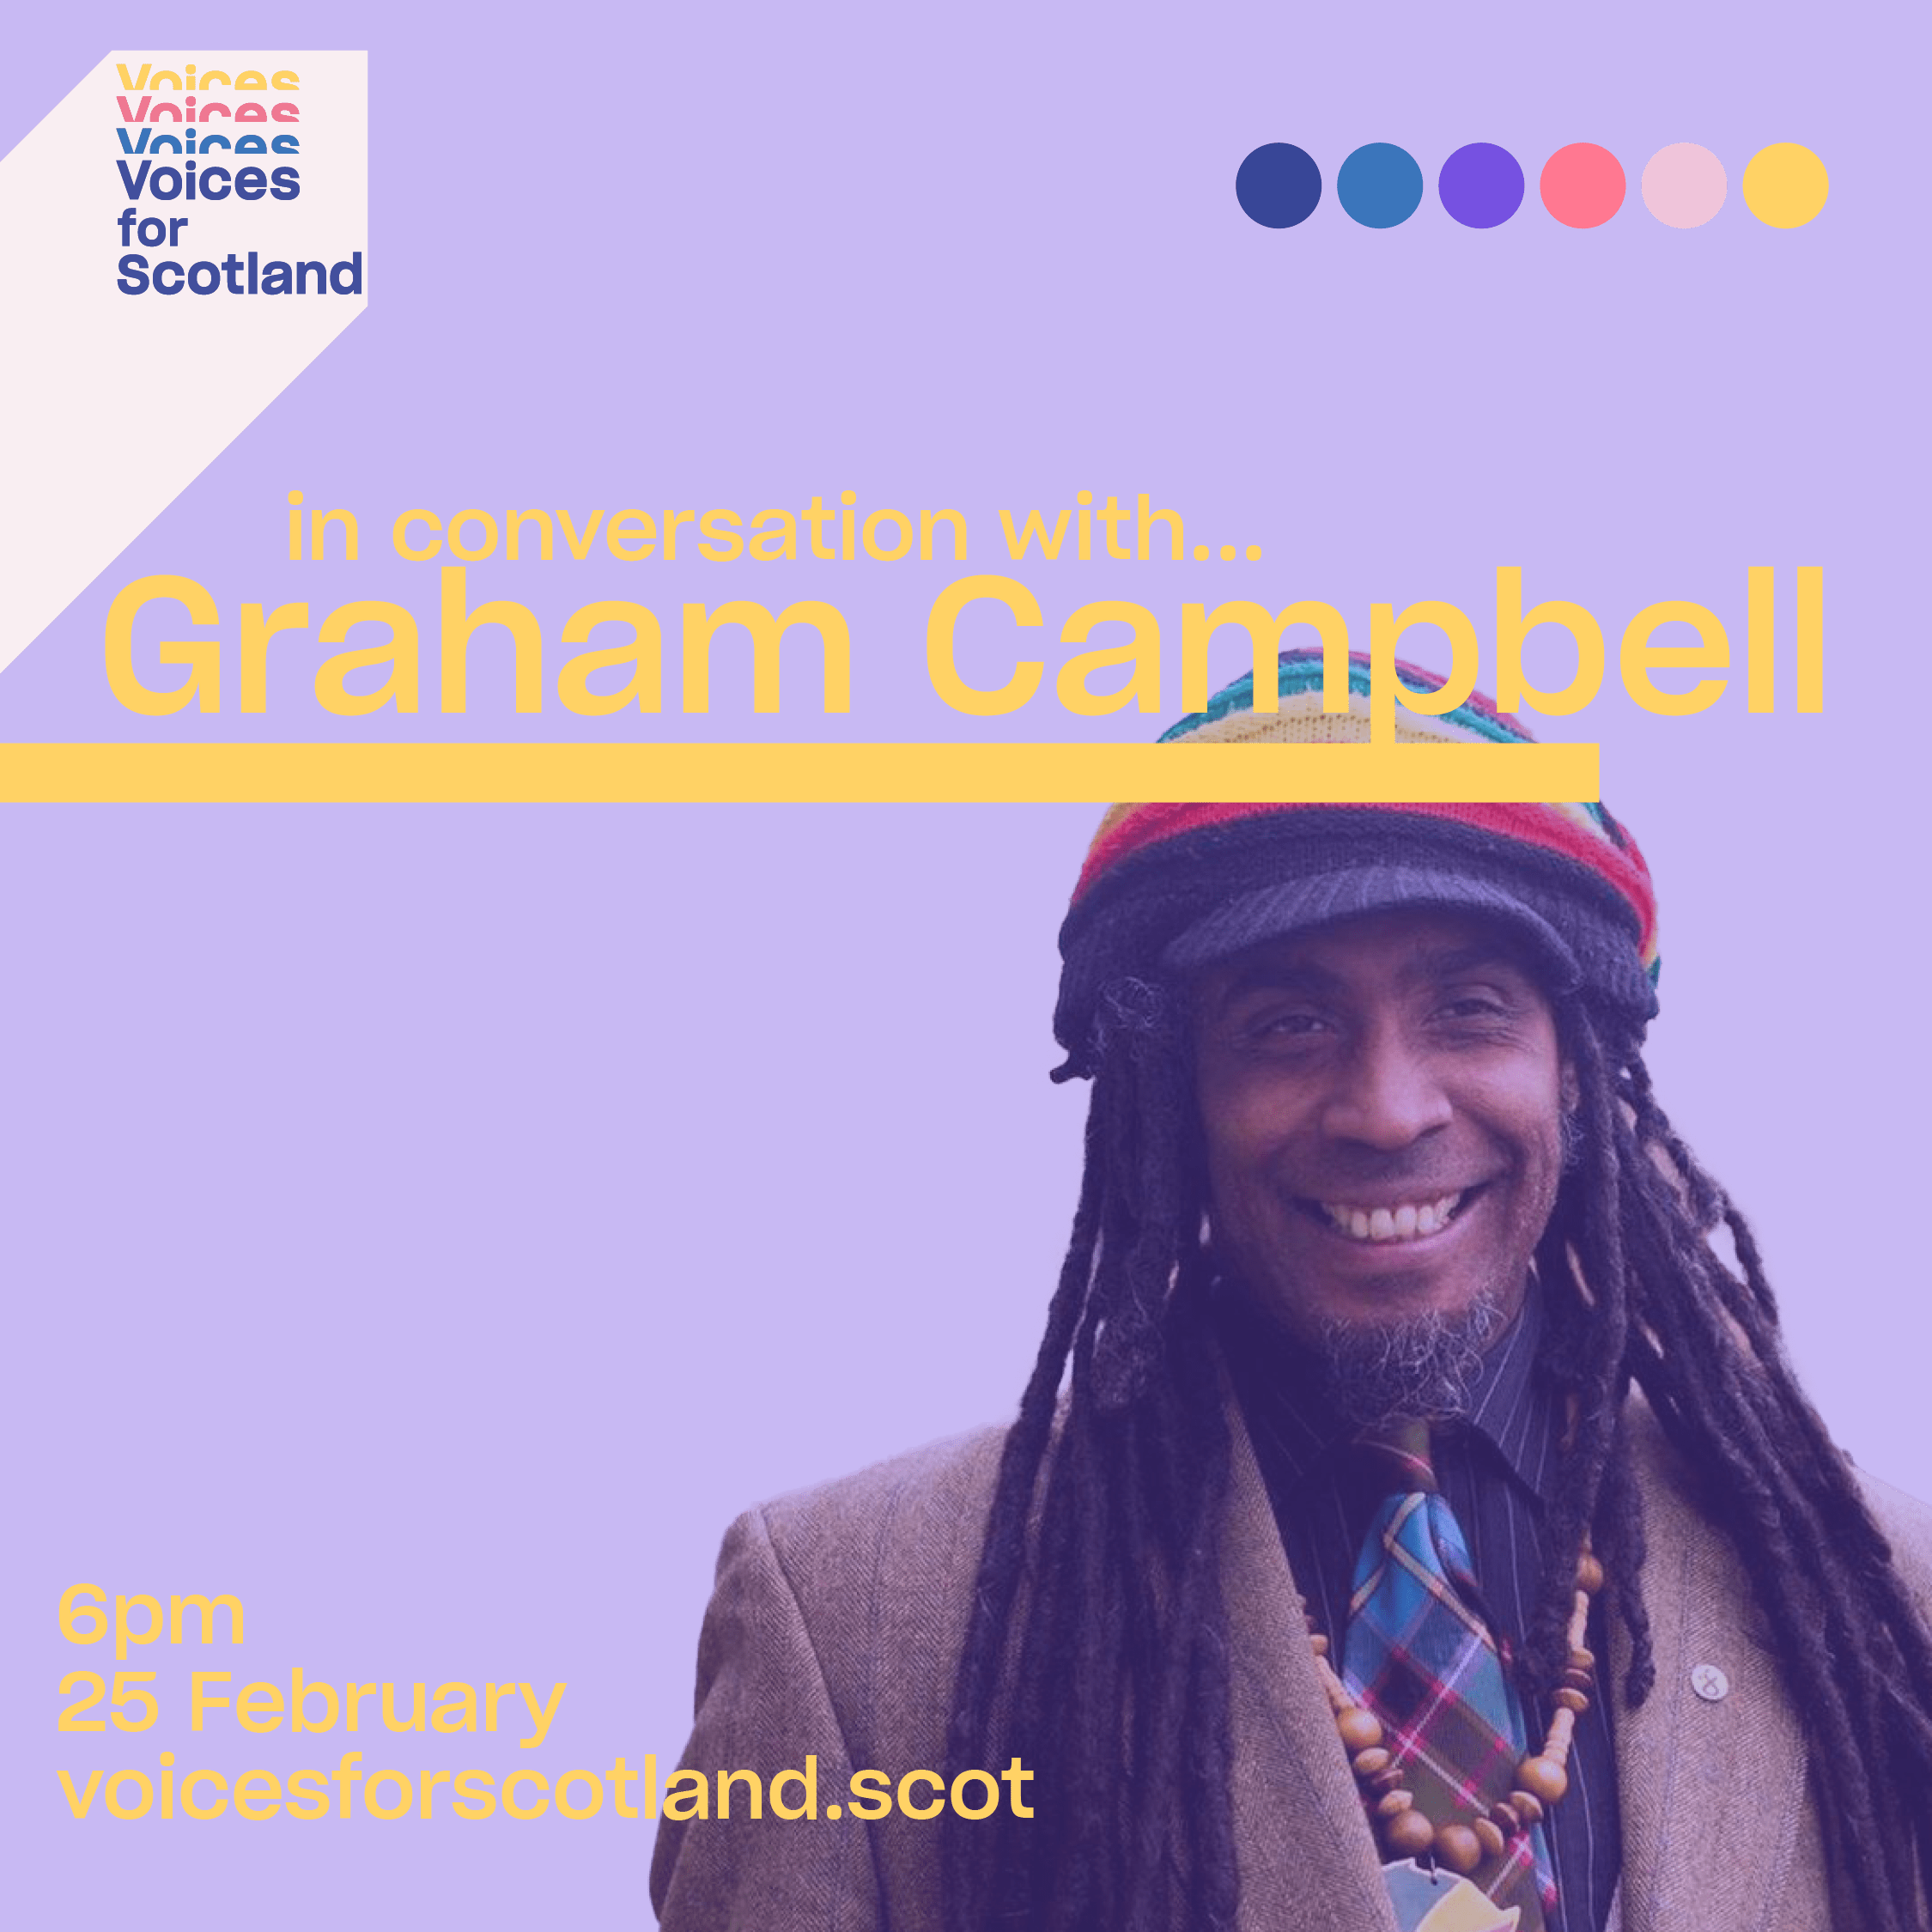 Poster for event with Graham Campbell on 25 February